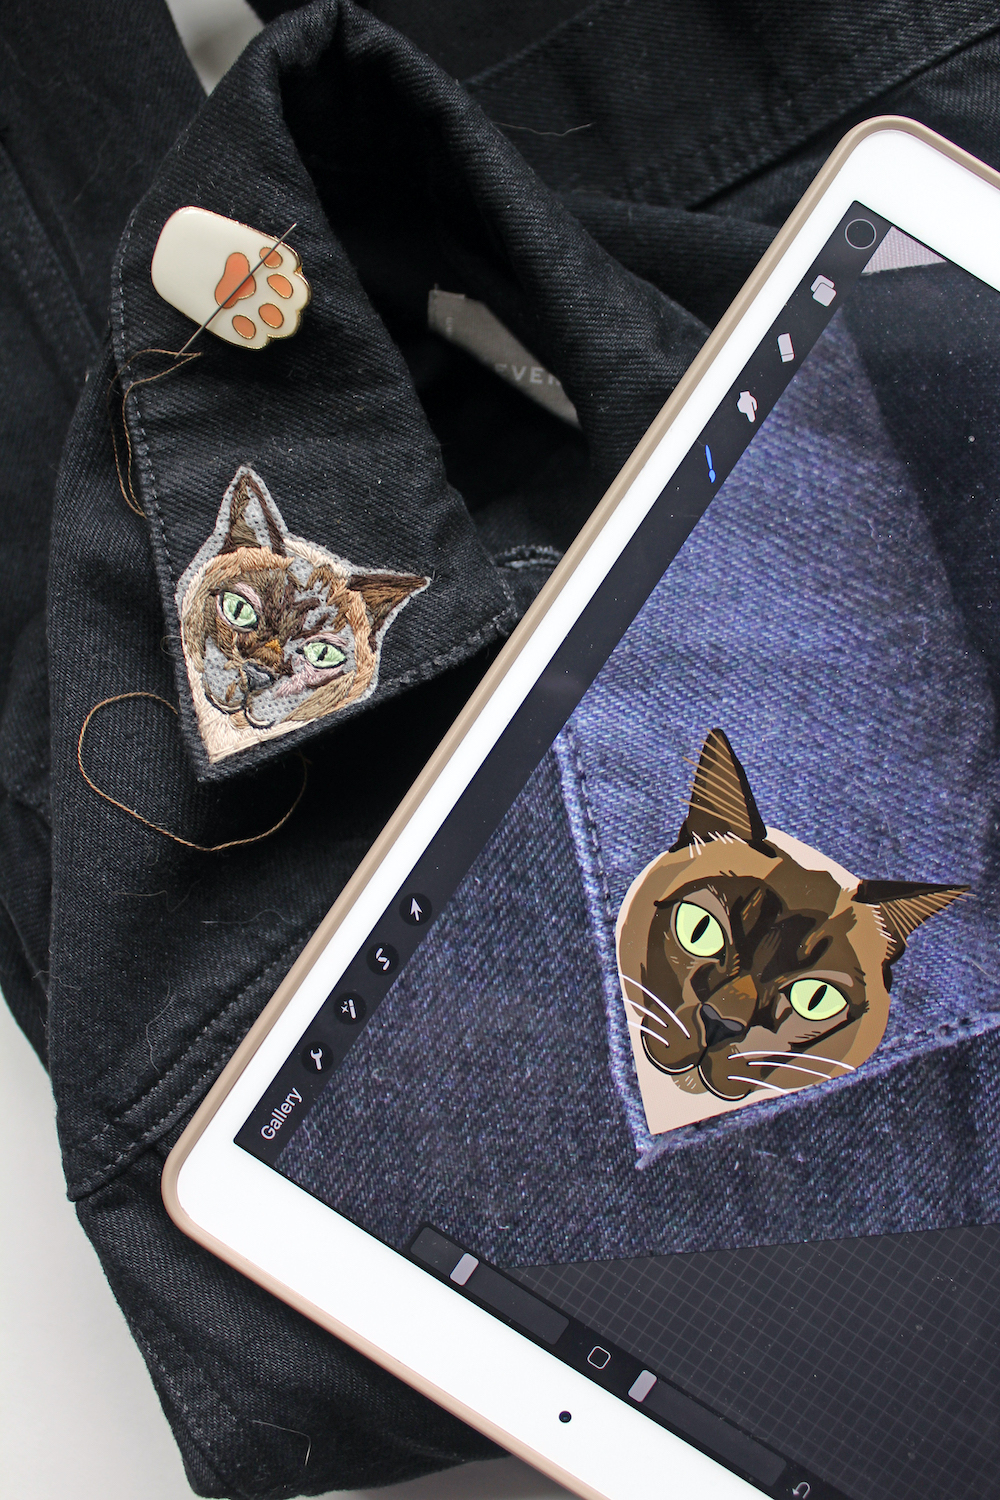 Cat embroidery accompanied by a digital sketch on an iPad